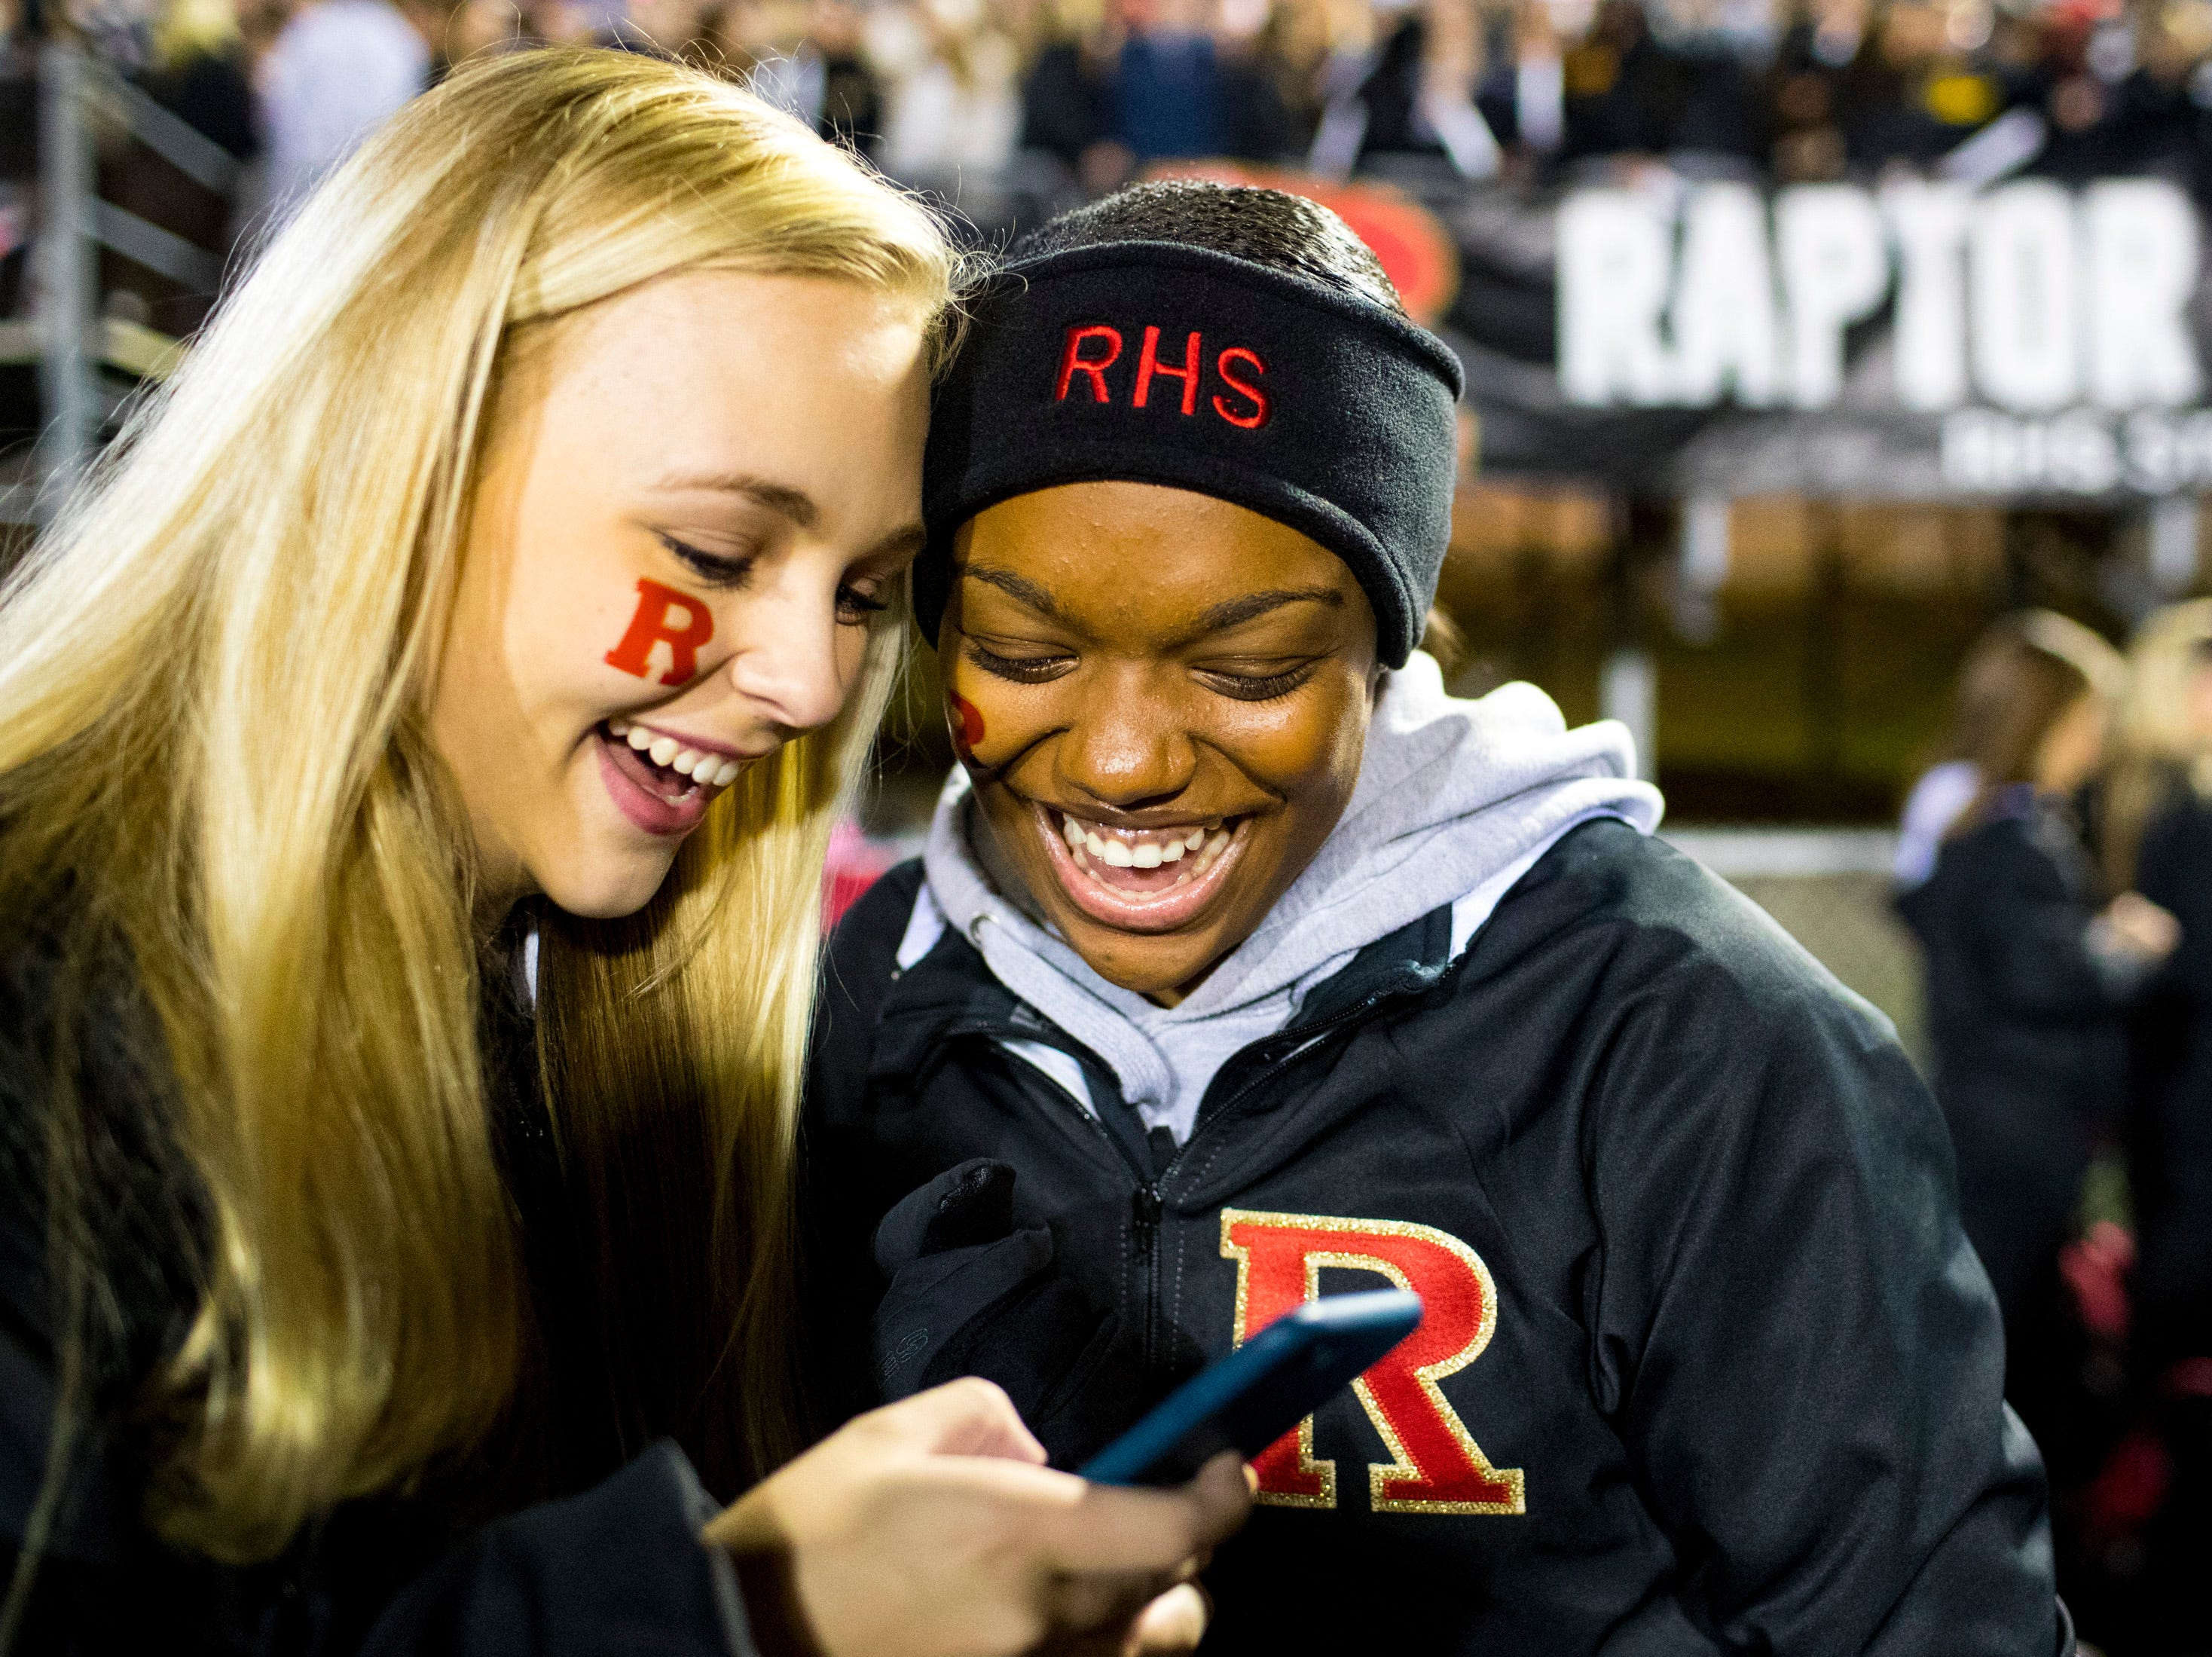 Kaylea Winton, left, and Paige Fisher look over photos they had just taken before Brentwood's game against Ravenwood at Brentwood High School in Brentwood on Friday, Nov. 16, 2018.